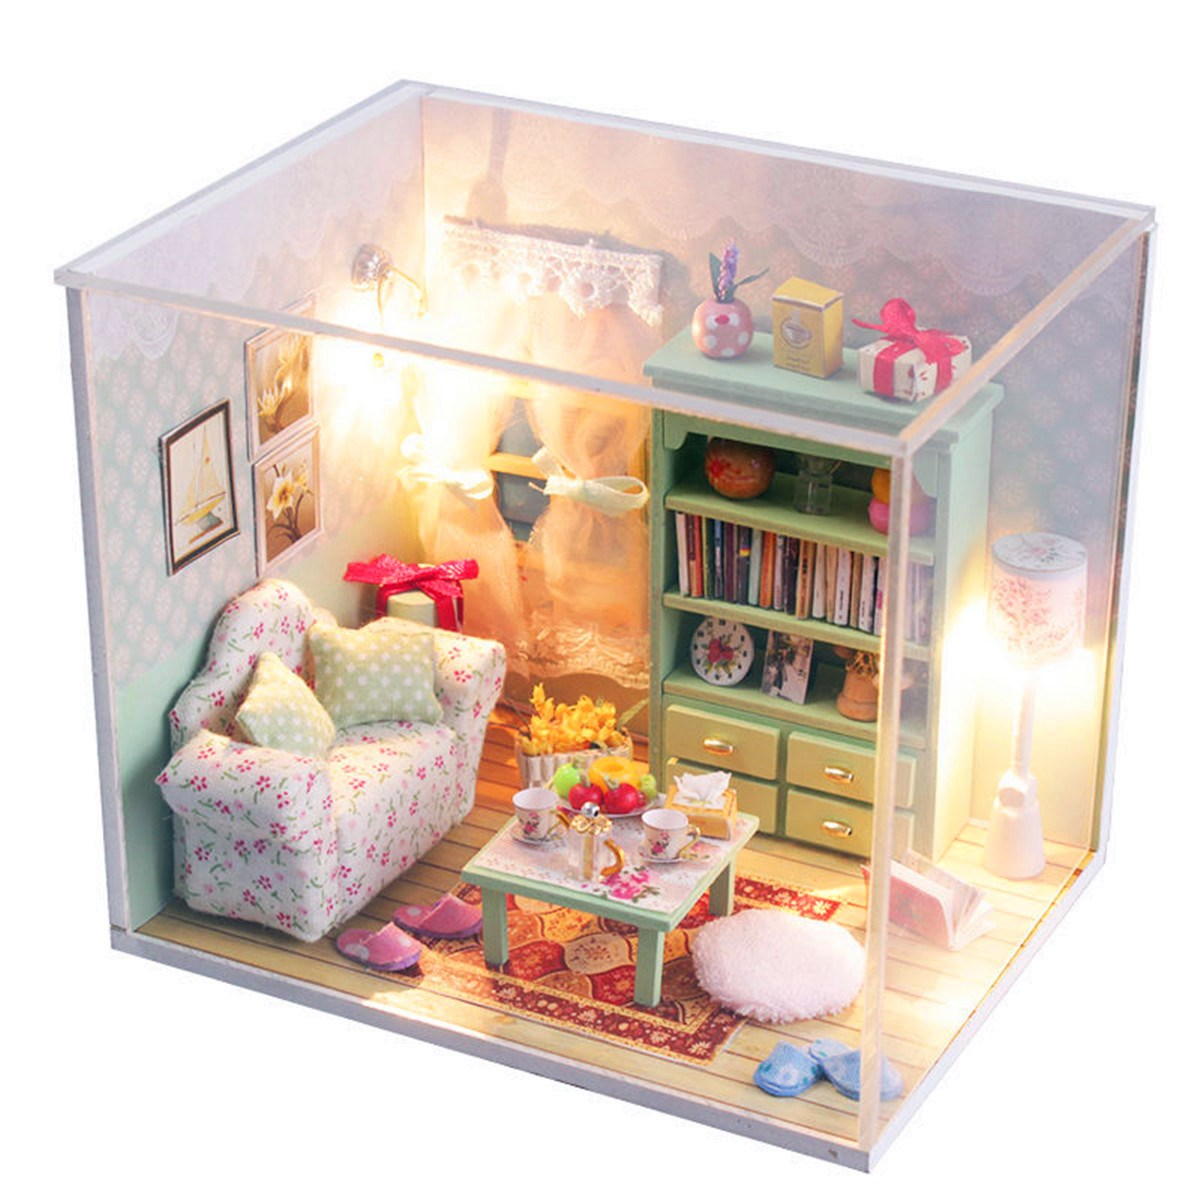 Diy Furniture Room Mini Box Dollhouse Doll House Miniature: Hoomeda DIY Mini Dream House Wood Dollhouse Miniature With